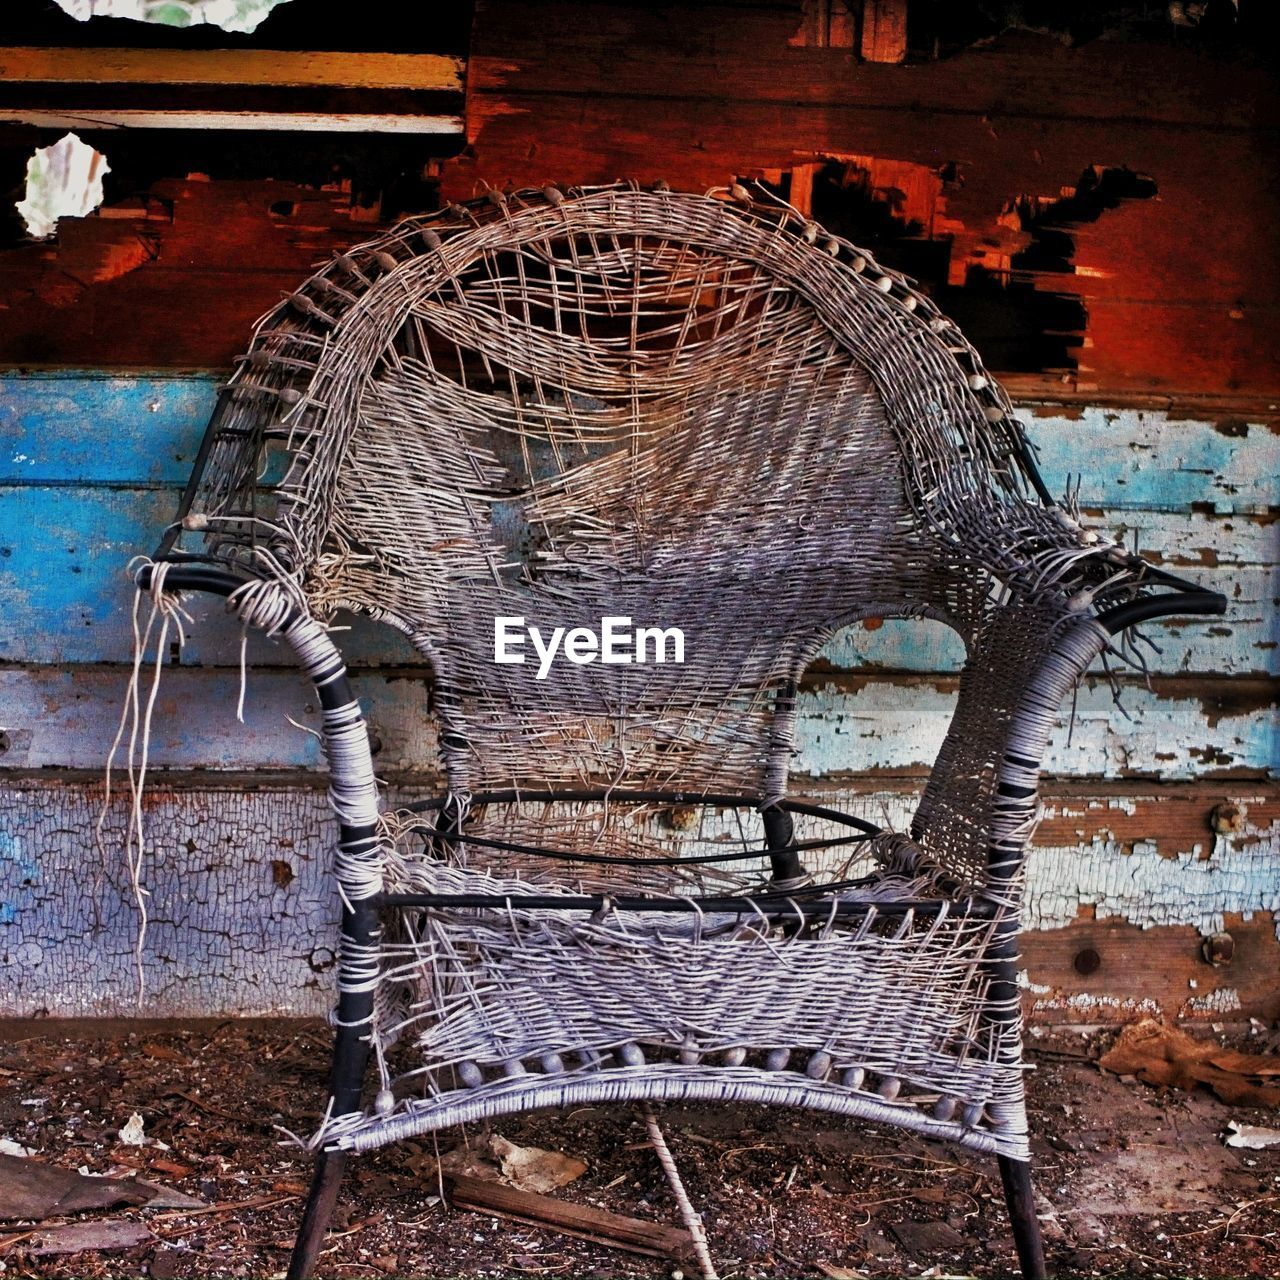 no people, metal, abandoned, architecture, seat, built structure, day, chair, obsolete, damaged, old, outdoors, absence, run-down, empty, decline, rusty, wall - building feature, bad condition, pattern, fishing industry, ruined, wheel